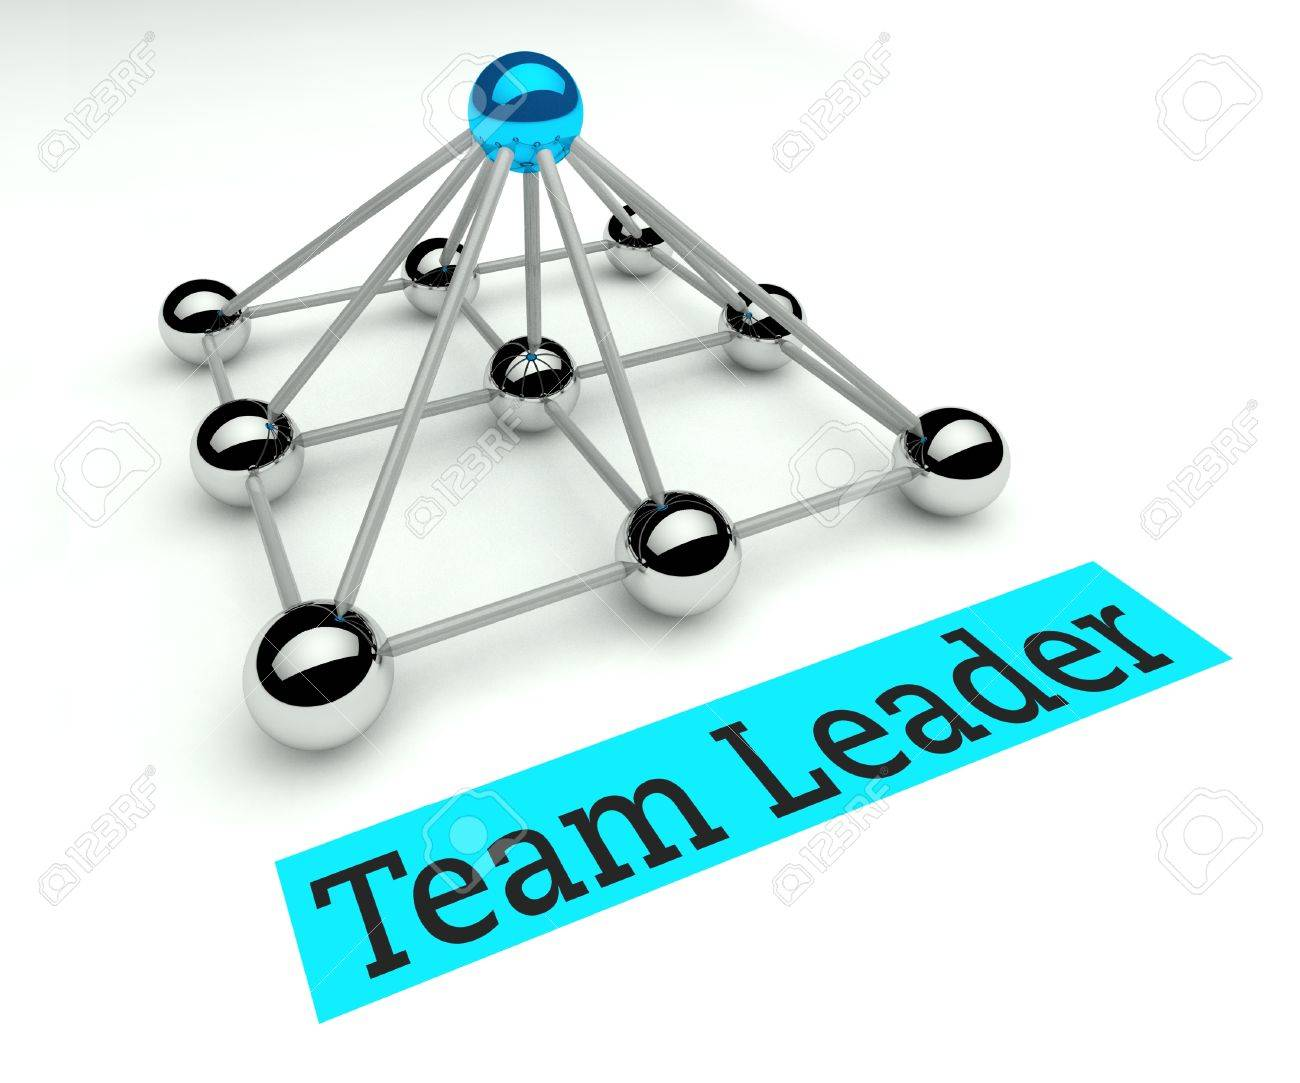 team leader concept hierarchy and management pyramid stock stock photo team leader concept hierarchy and management pyramid